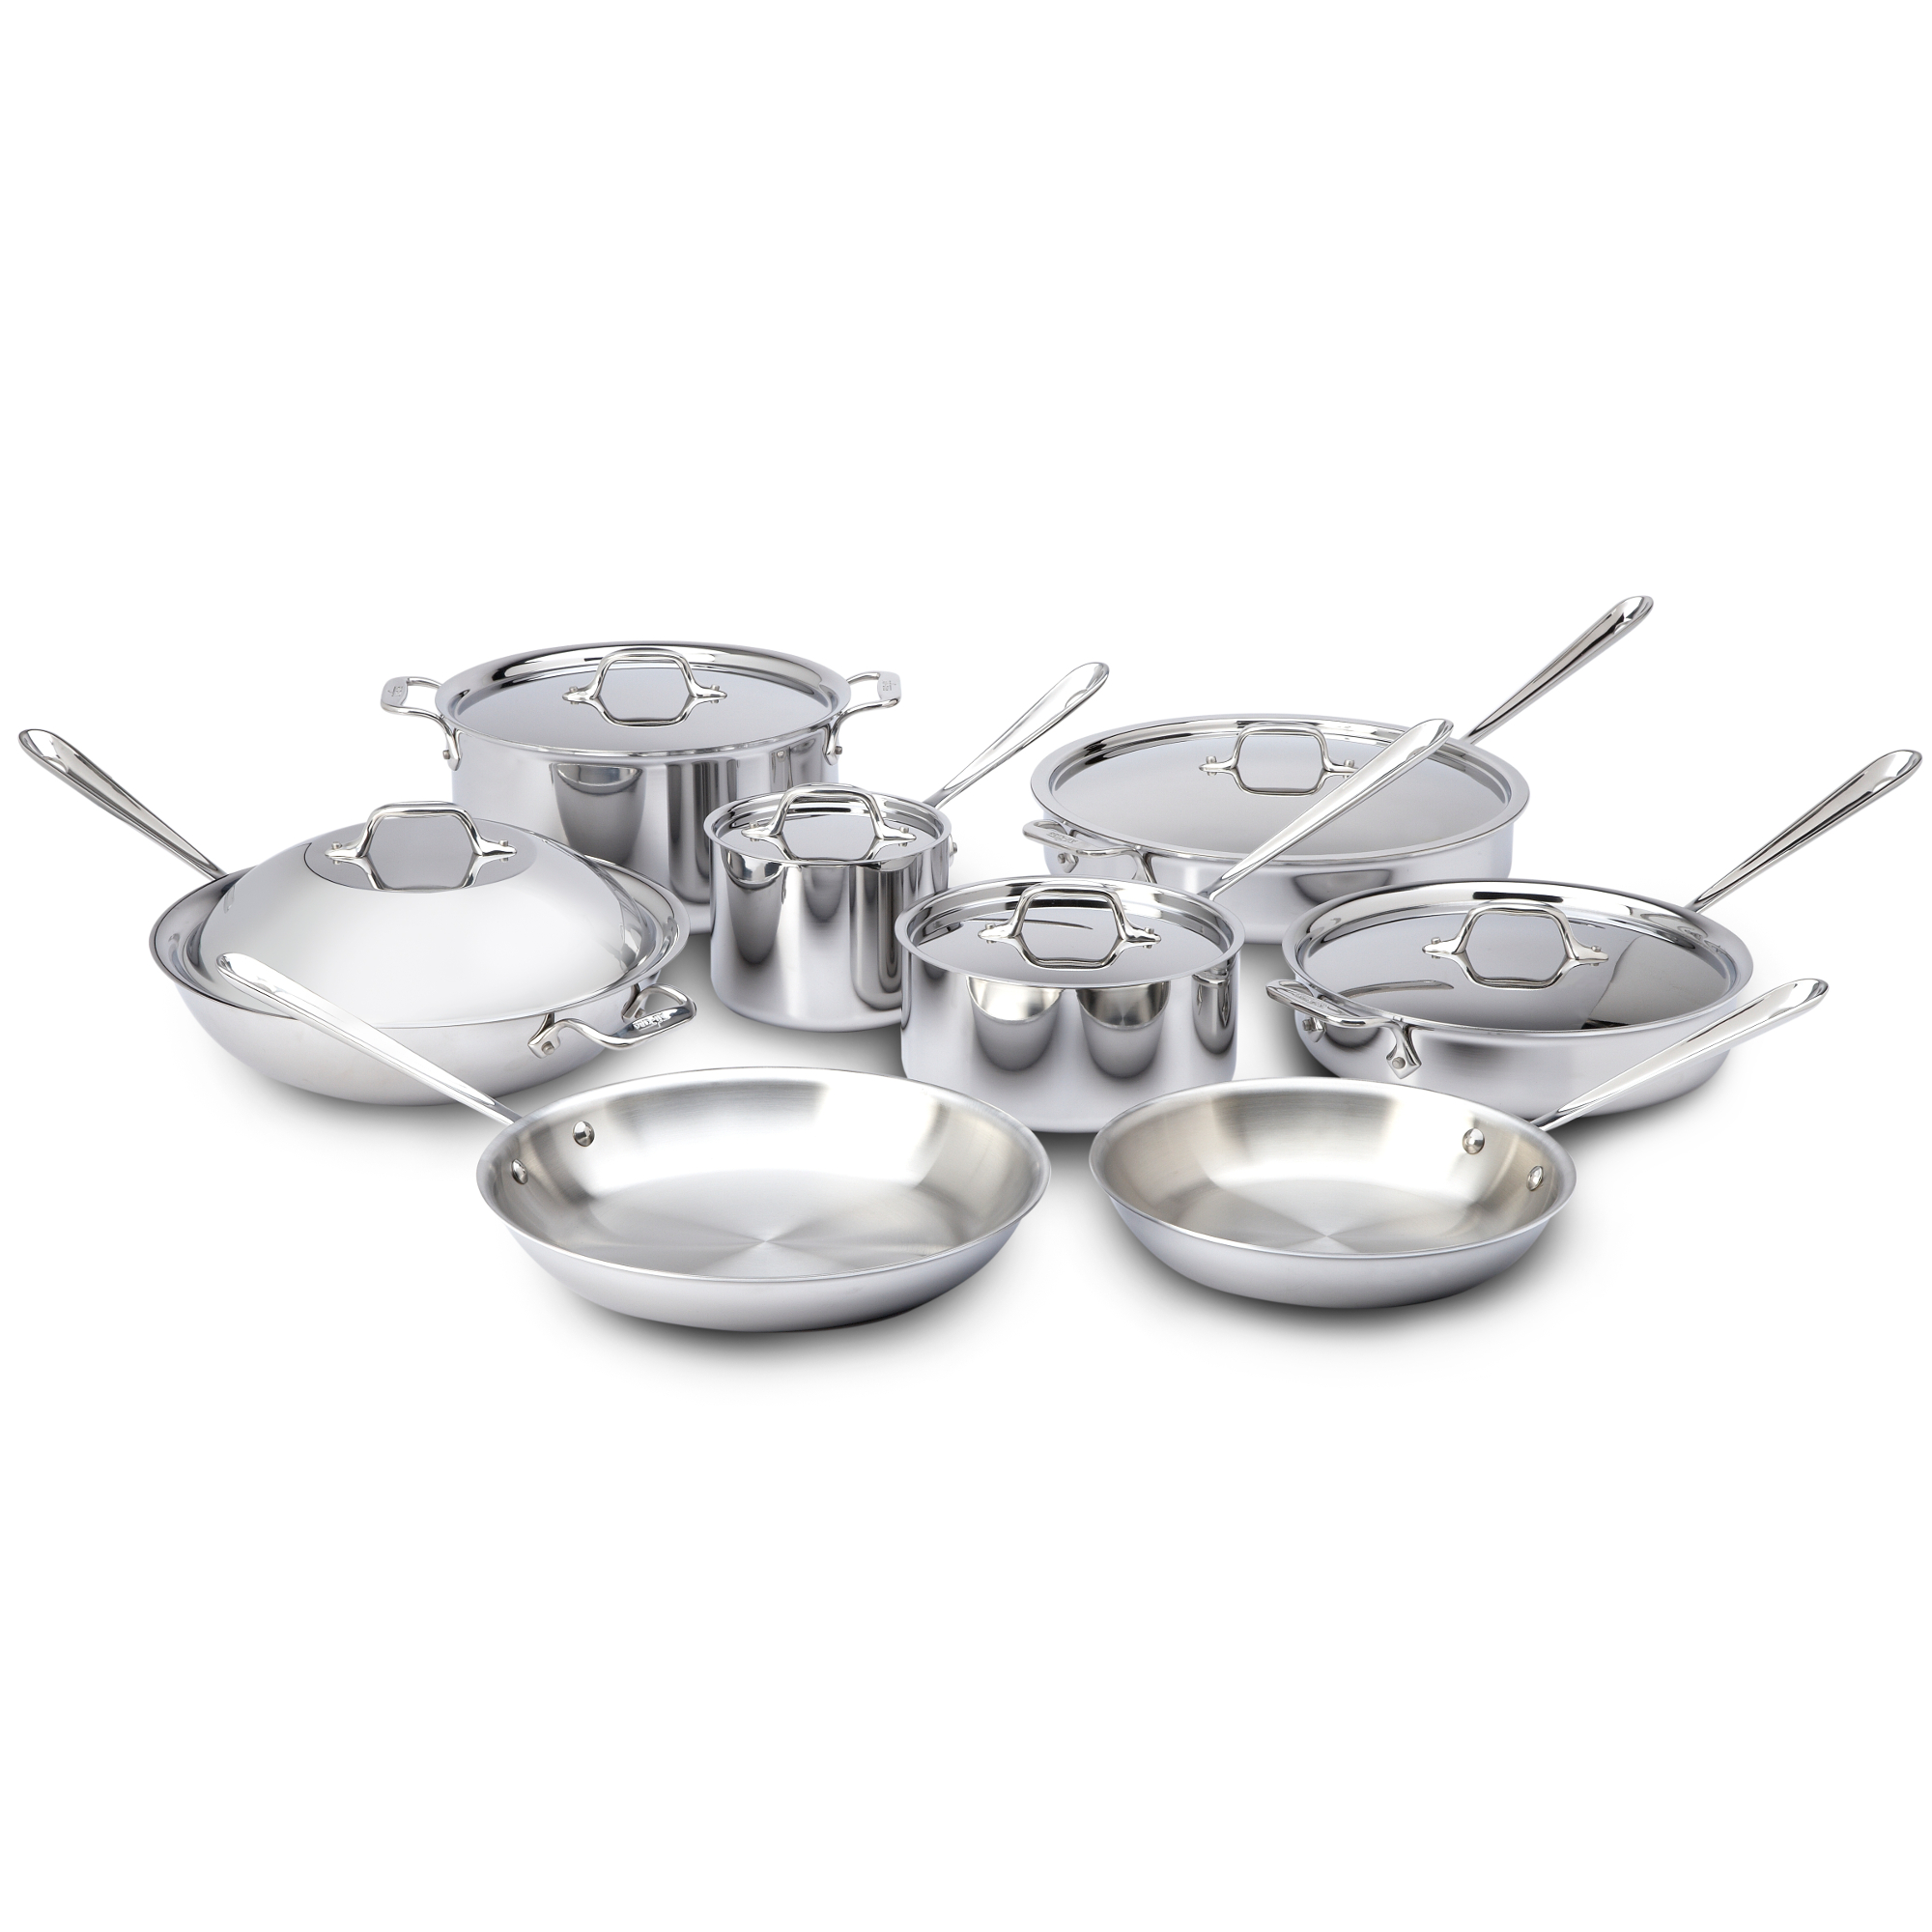 All-Clad 14 Piece 18/10 Stainless Steel Cookware Set